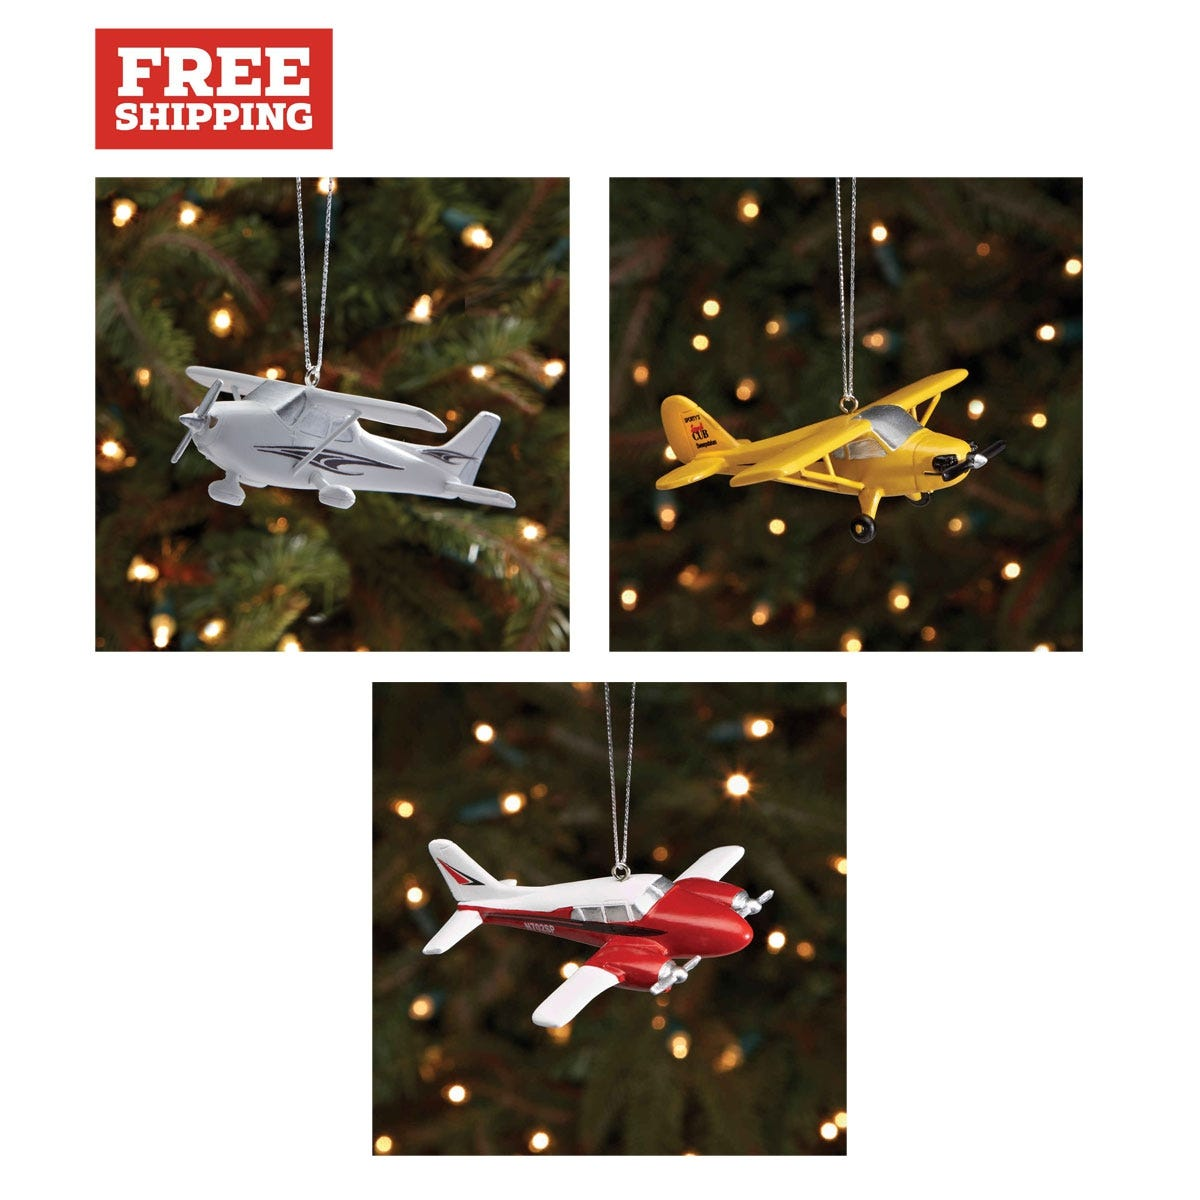 Piper Aztec, Cub, and Cessna 172 Christmas Ornaments - from Sporty\'s ...